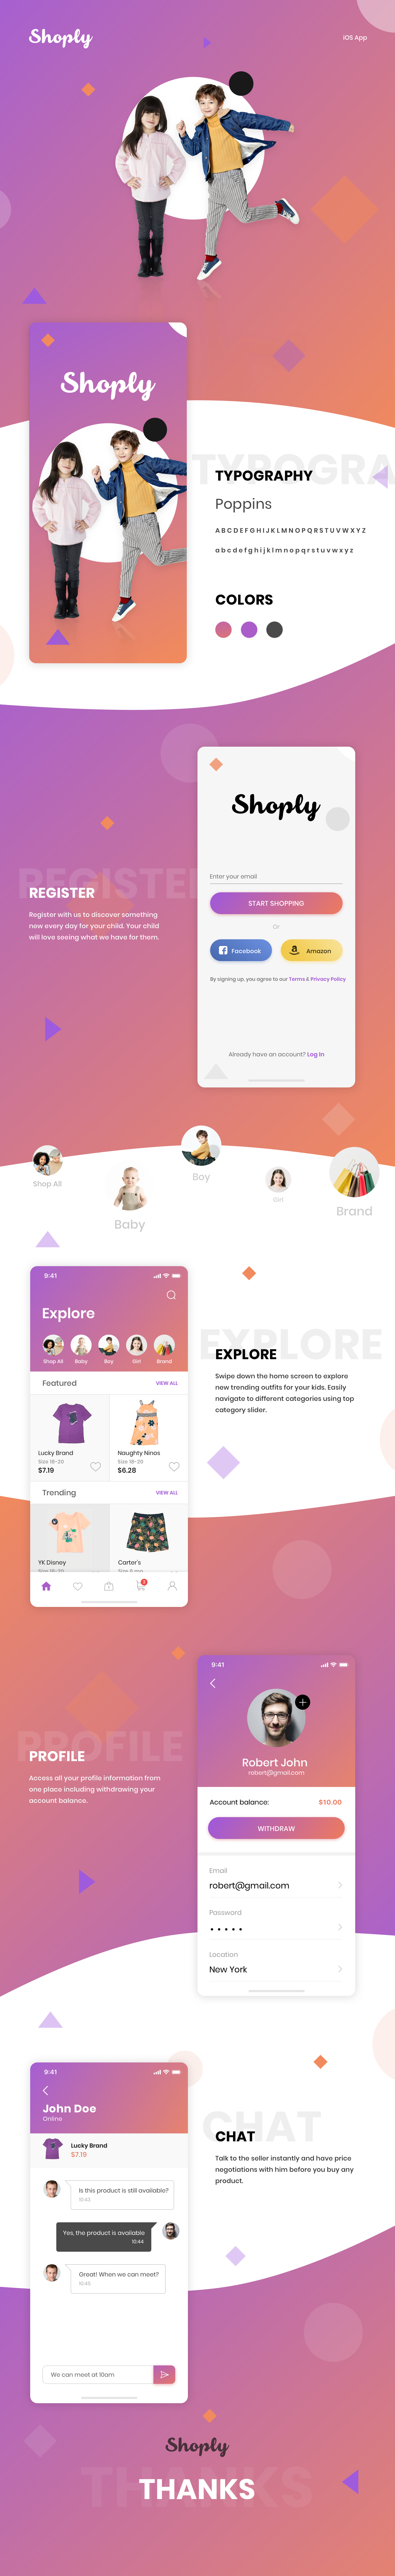 iphone app Android App Mobile app UI ux branding  Shopping Ecommerce user experiance user interface